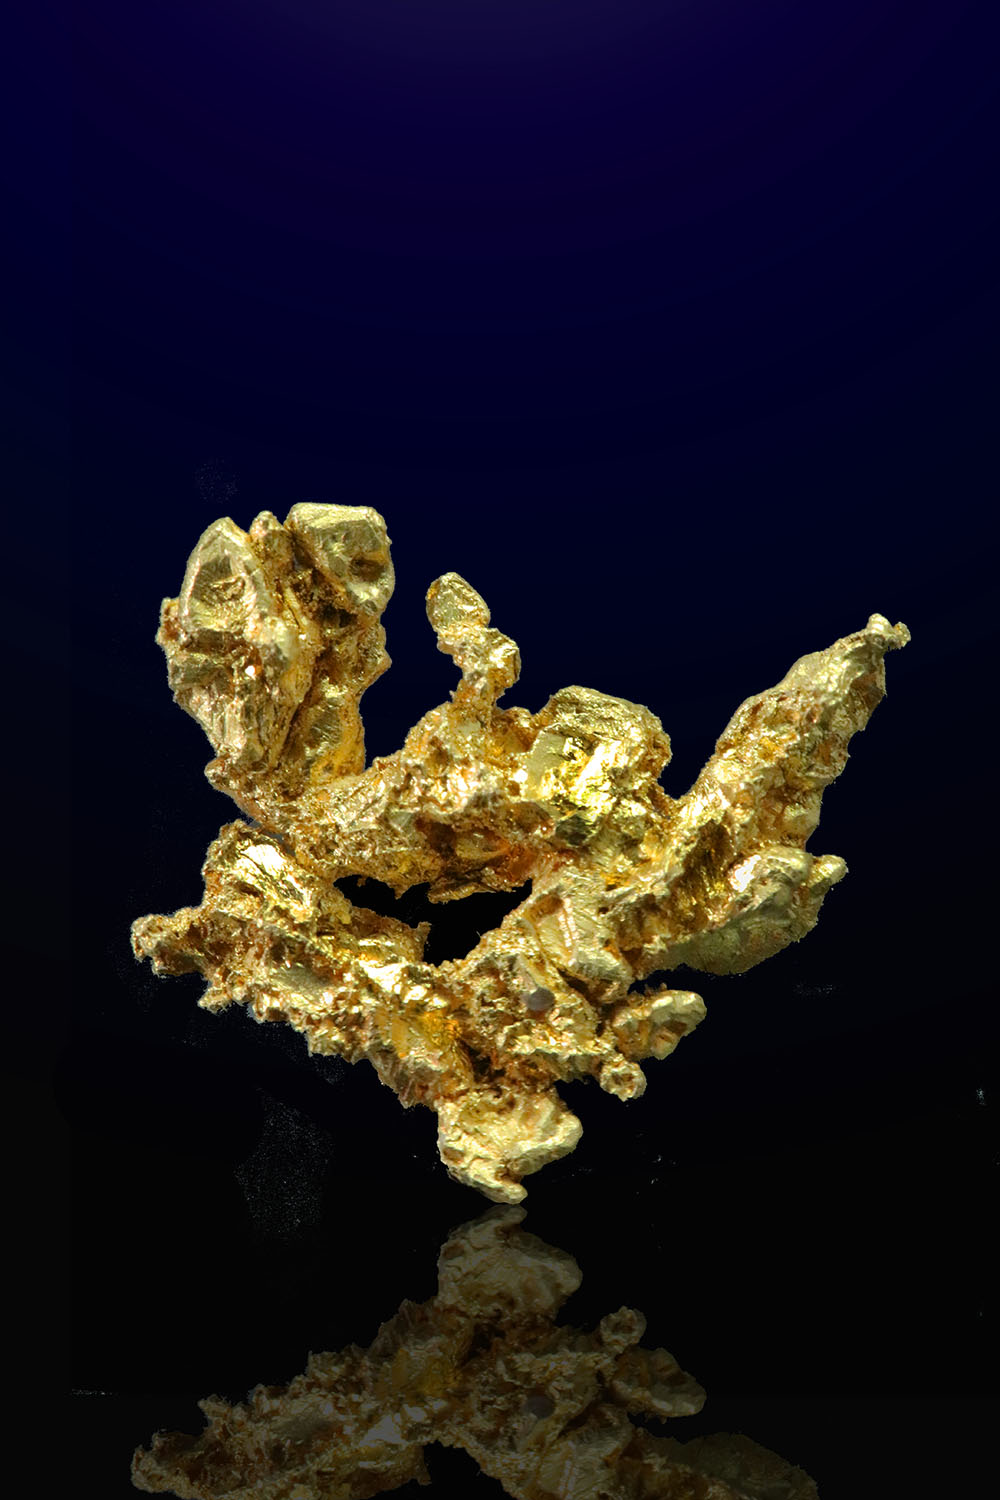 Colorado Quartz Mine, Mariposa, California - Gold Crystal